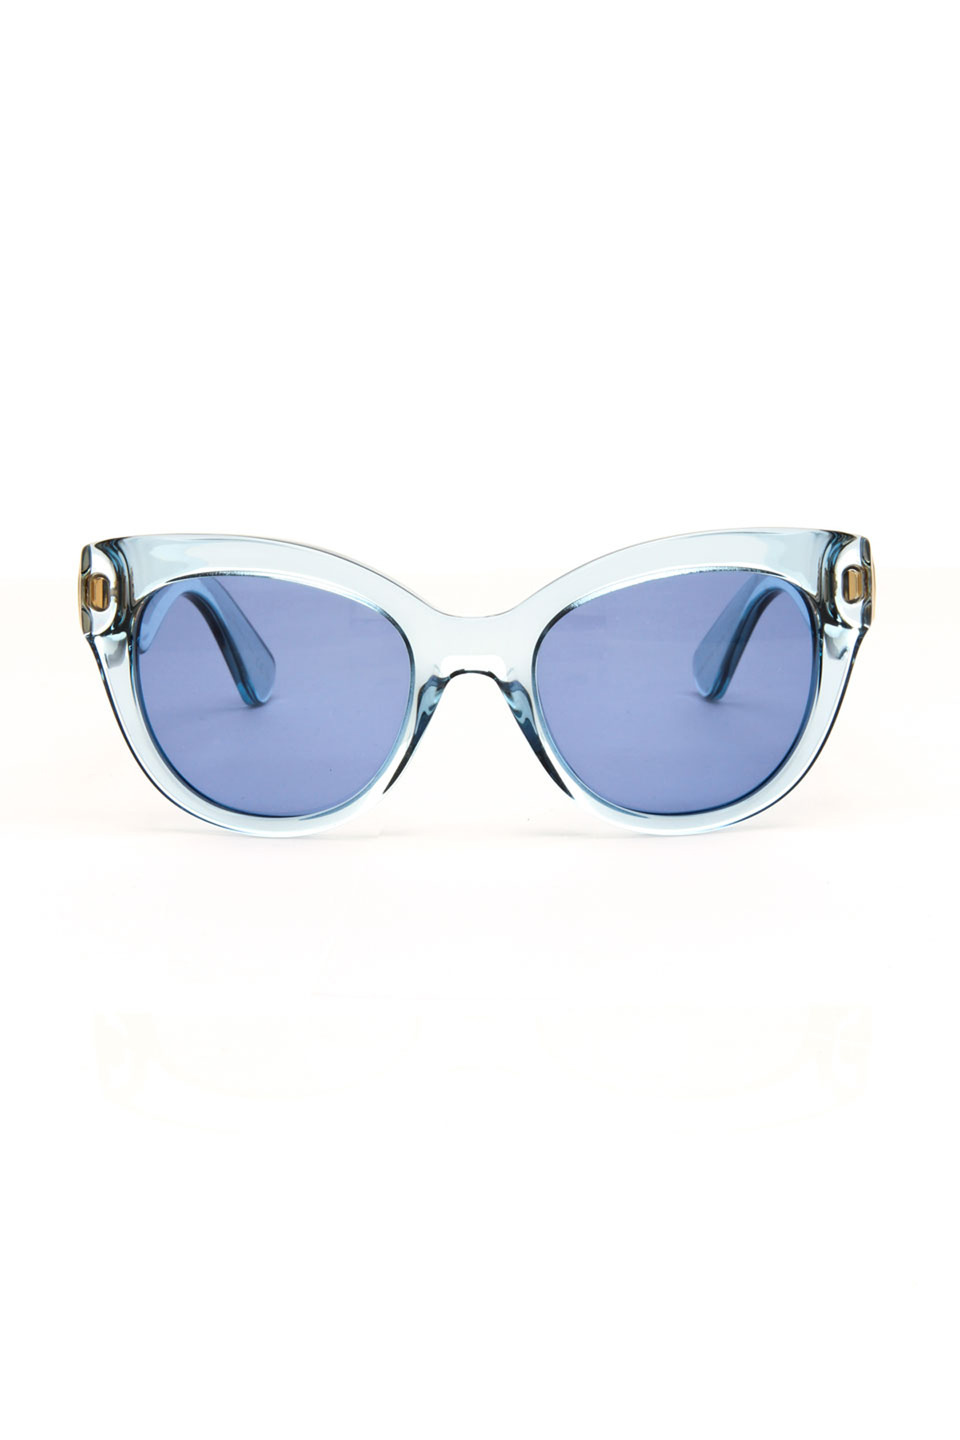 Kate Spade Ladies Sunglasses in Turquoise